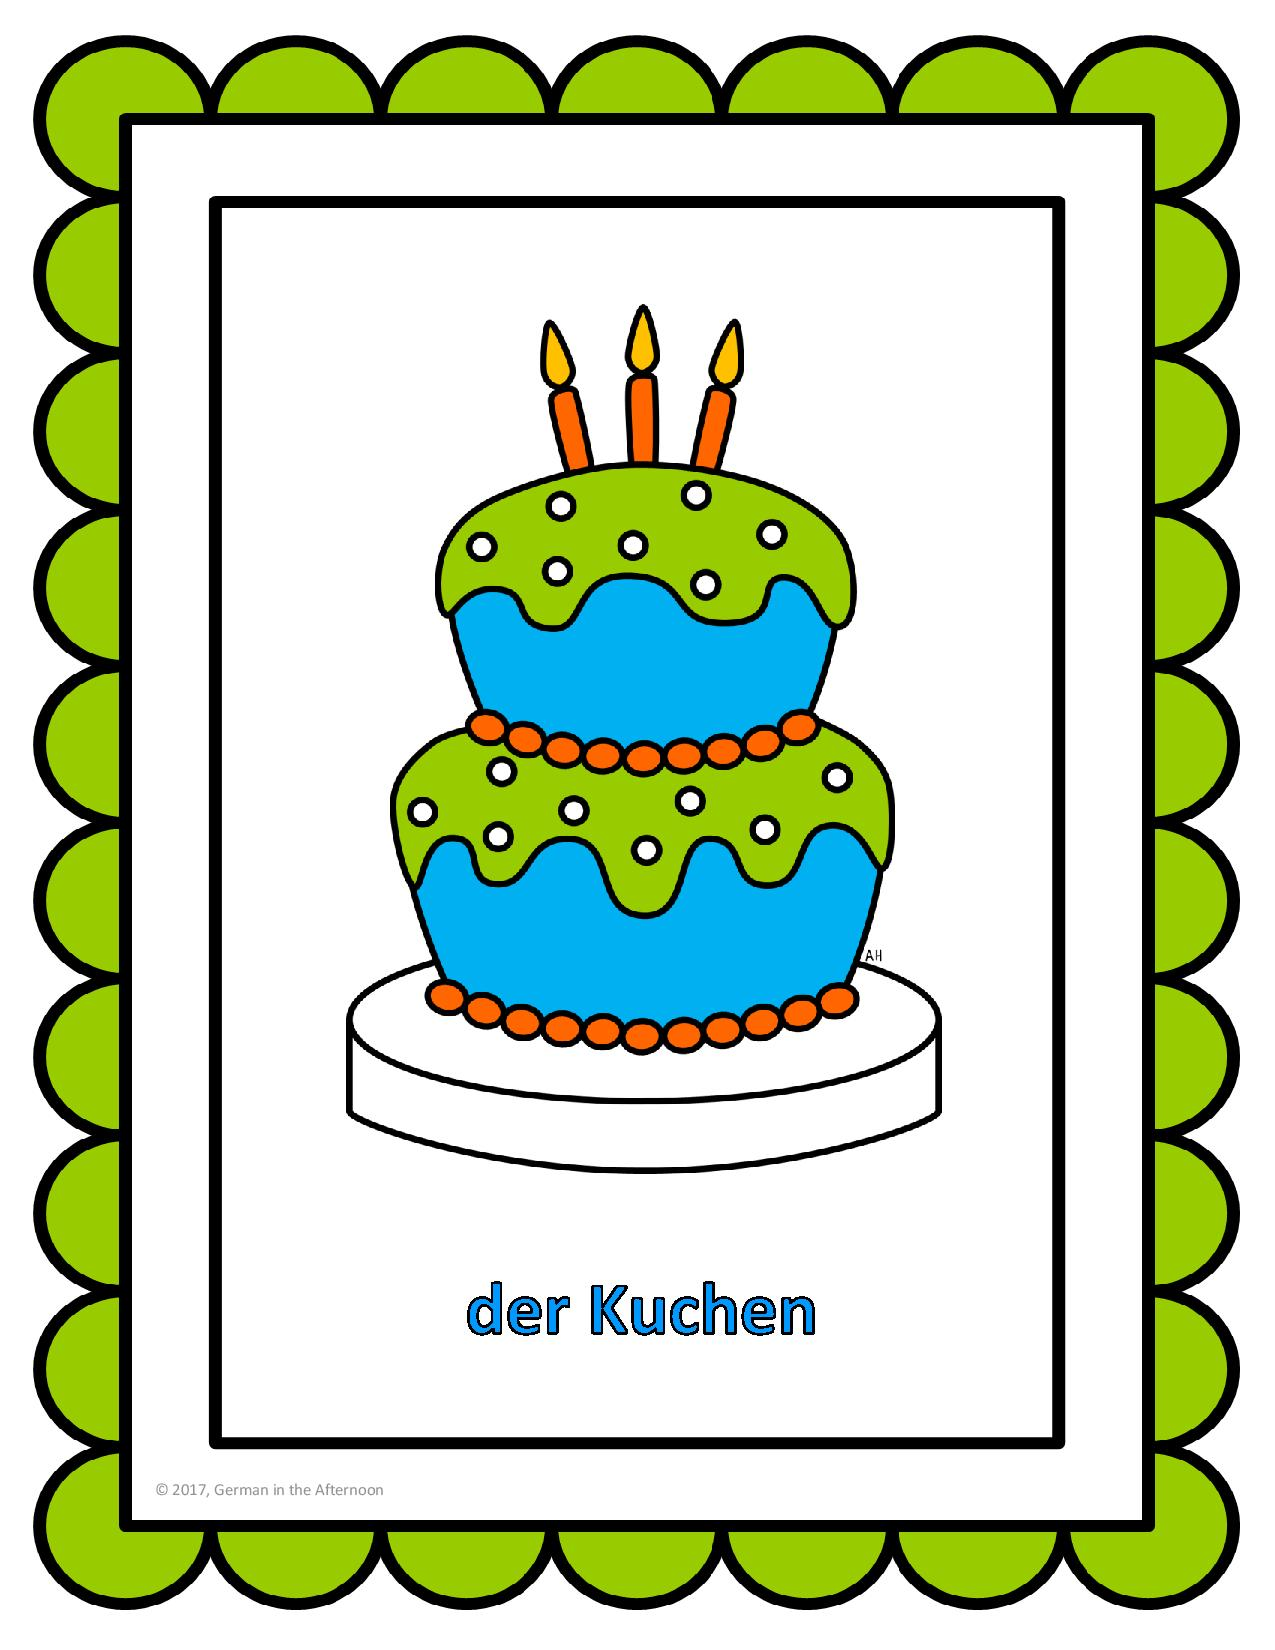 Happy Birthday! | German in the Afternoon Activities